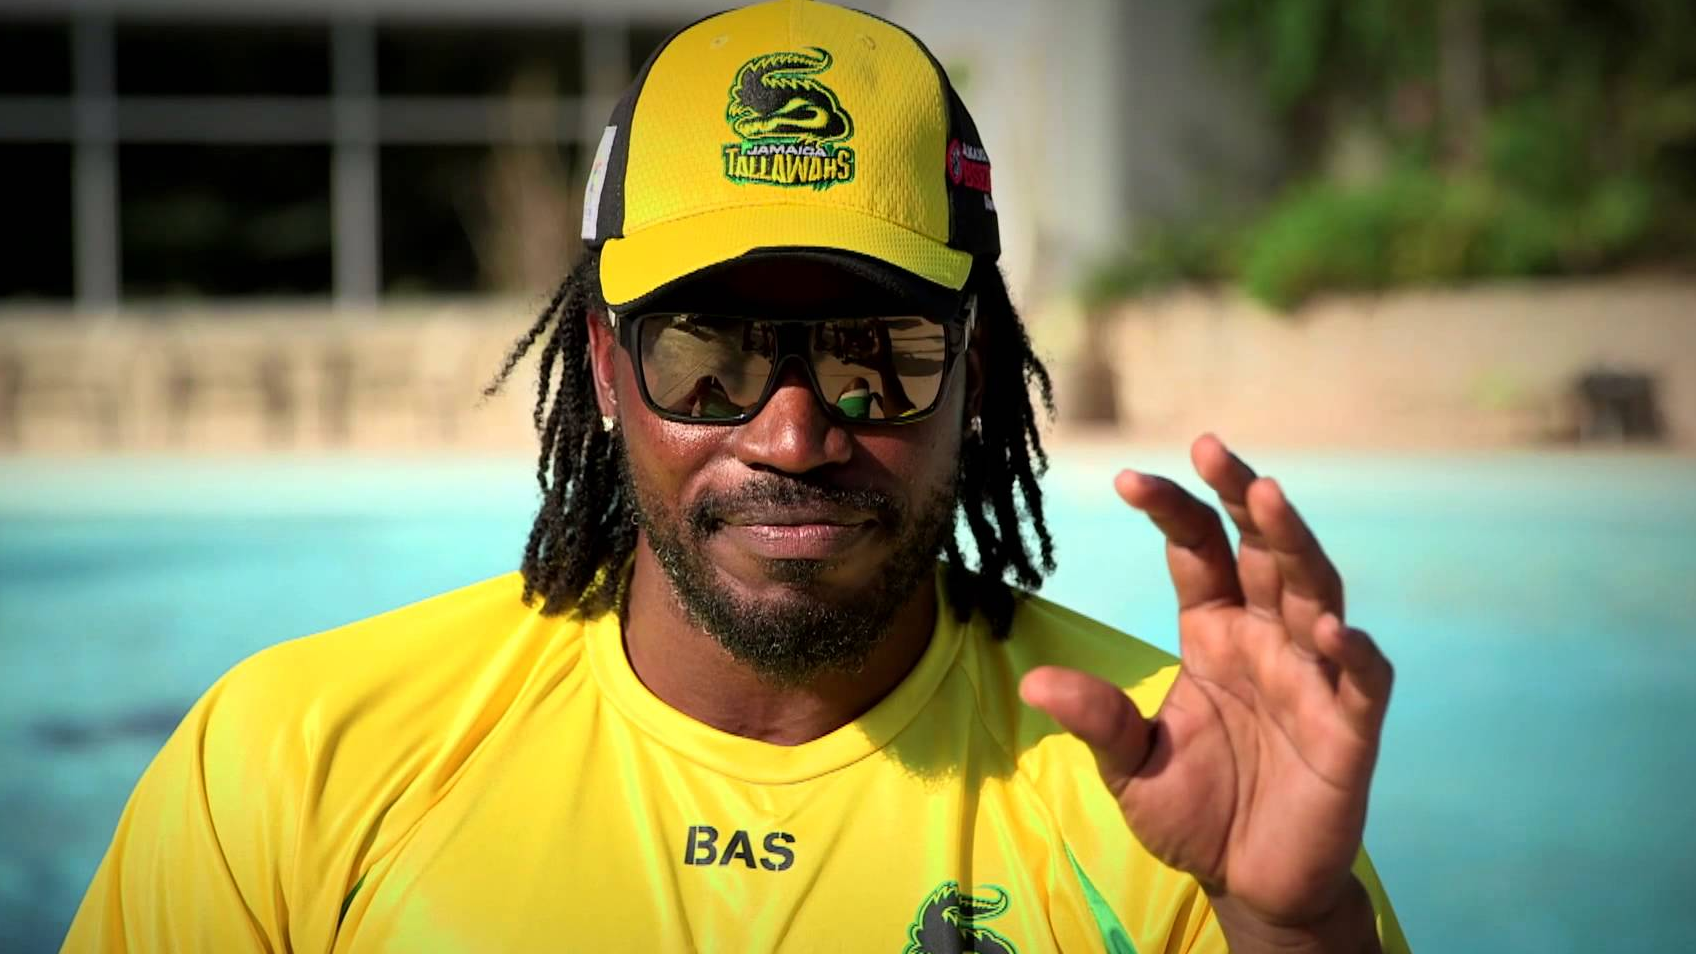 IPL 2018: Chris Gayle talks about cricketers who have inspired him